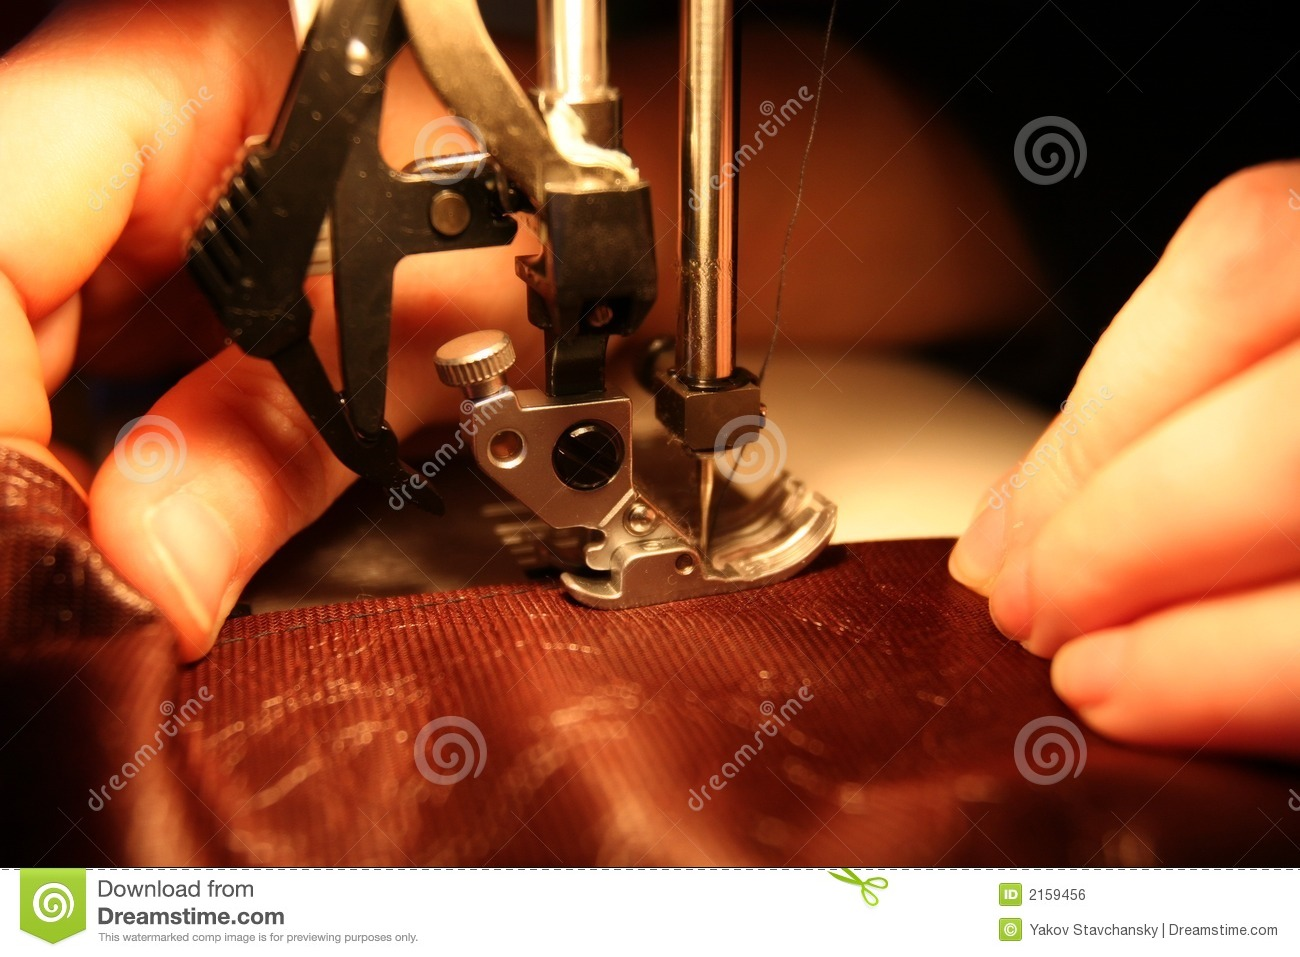 In a small sewing workshop.